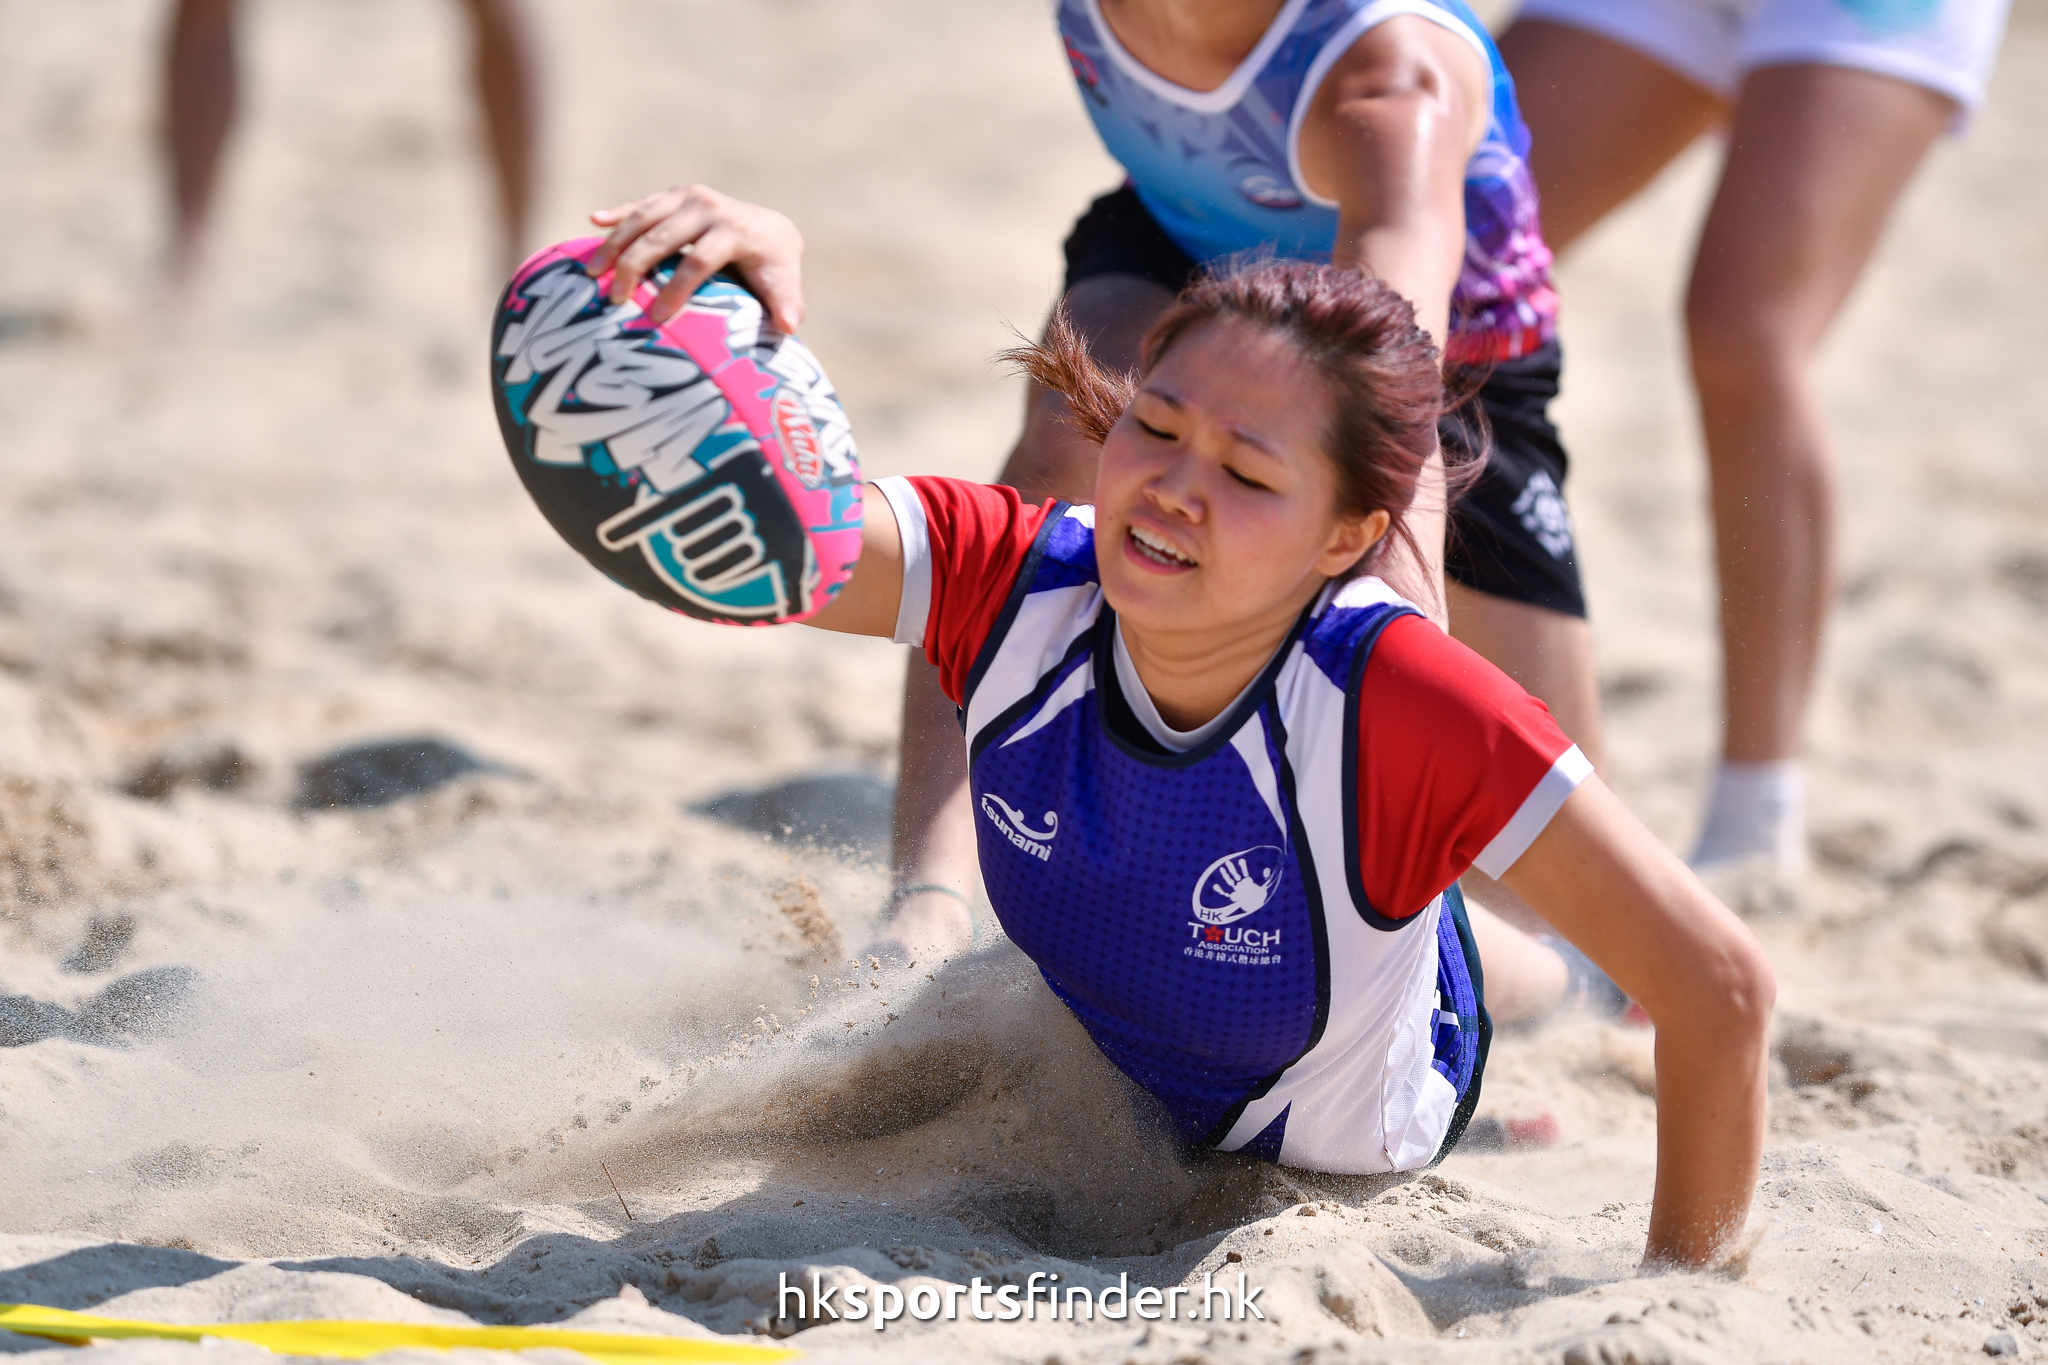 Her_GoldCoastTertiaryBeachRugby_16-11-12 11.51.16_000591.jpg